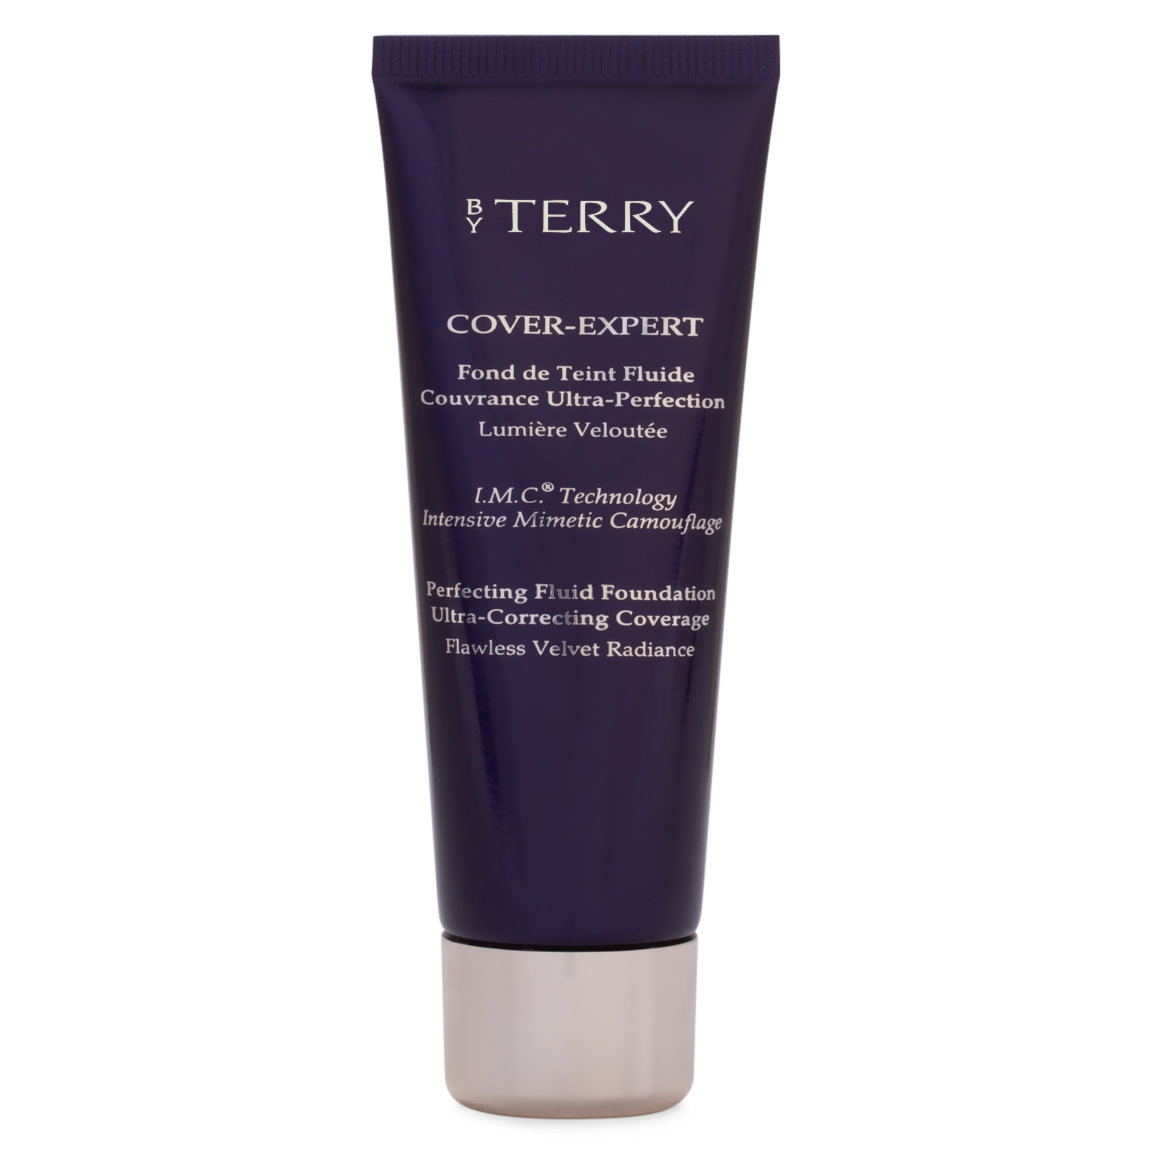 BY TERRY Cover-Expert Perfecting Fluid Foundation 12 Warm Copper